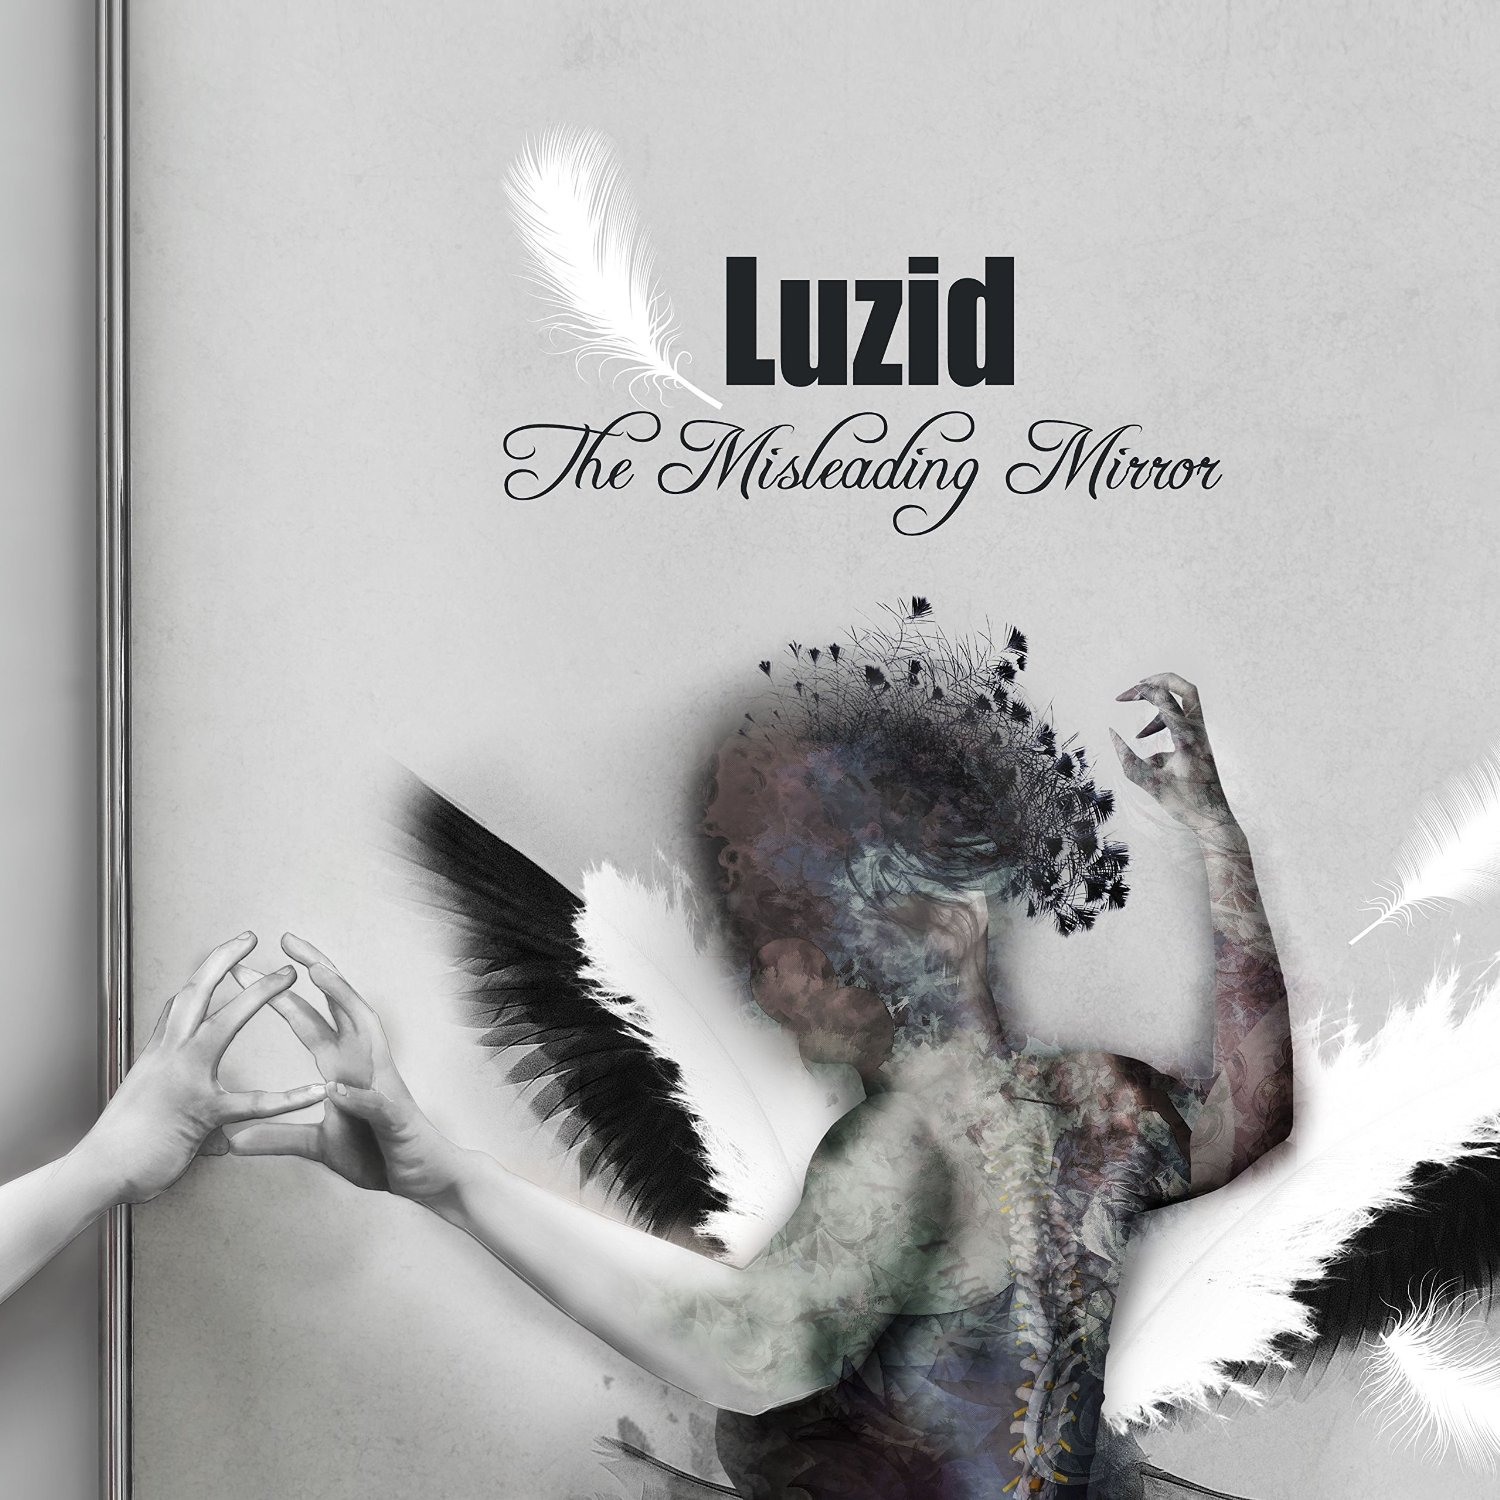 Luzid: The Misleading Mirror (2016) Book Cover